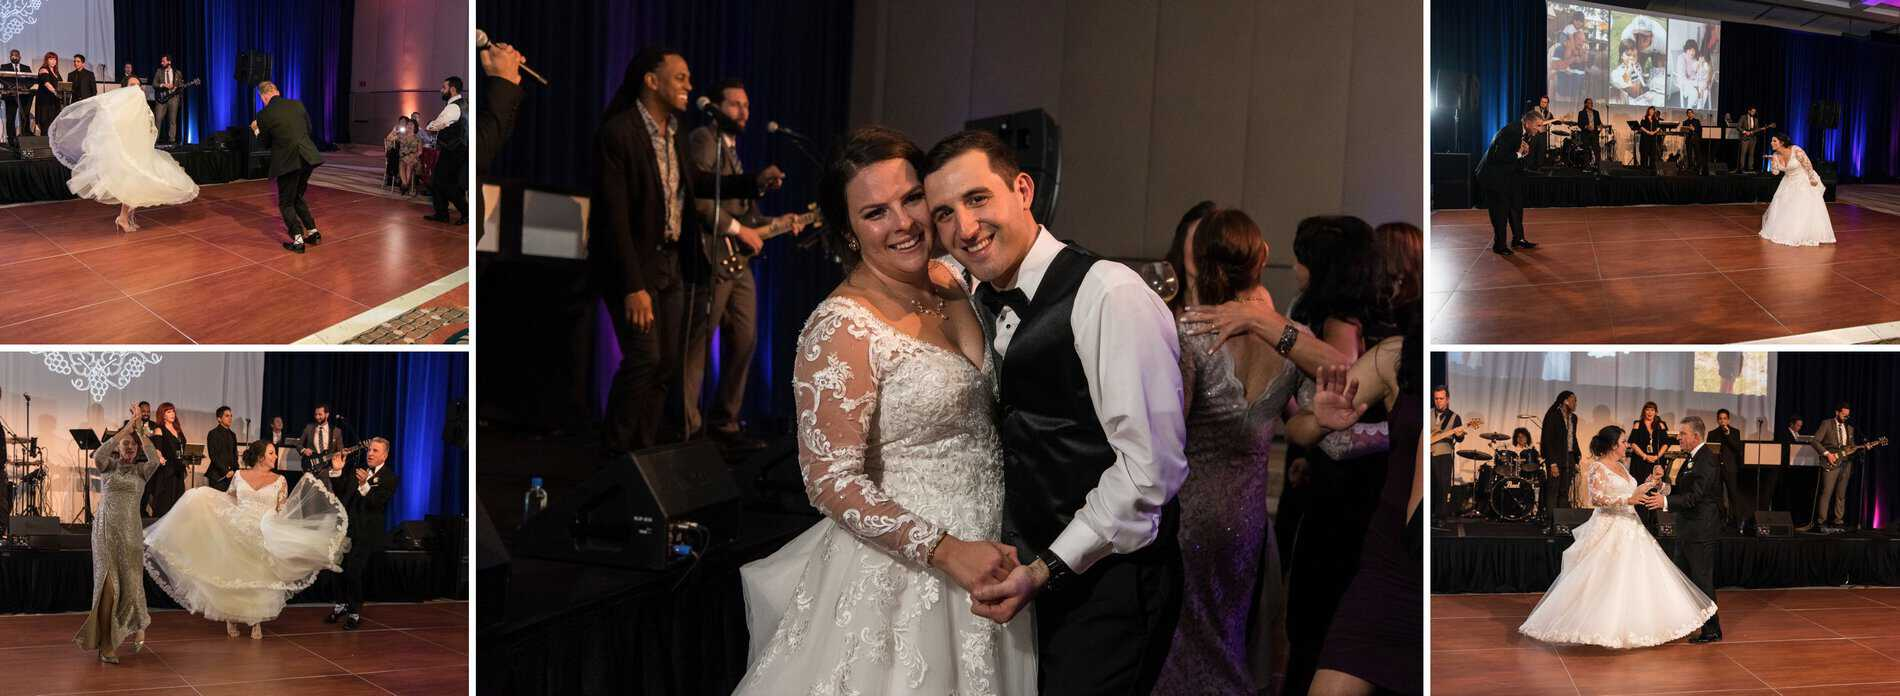 Bride and Groom dance for the first time at Disney Swan and Dolphin Ballroom